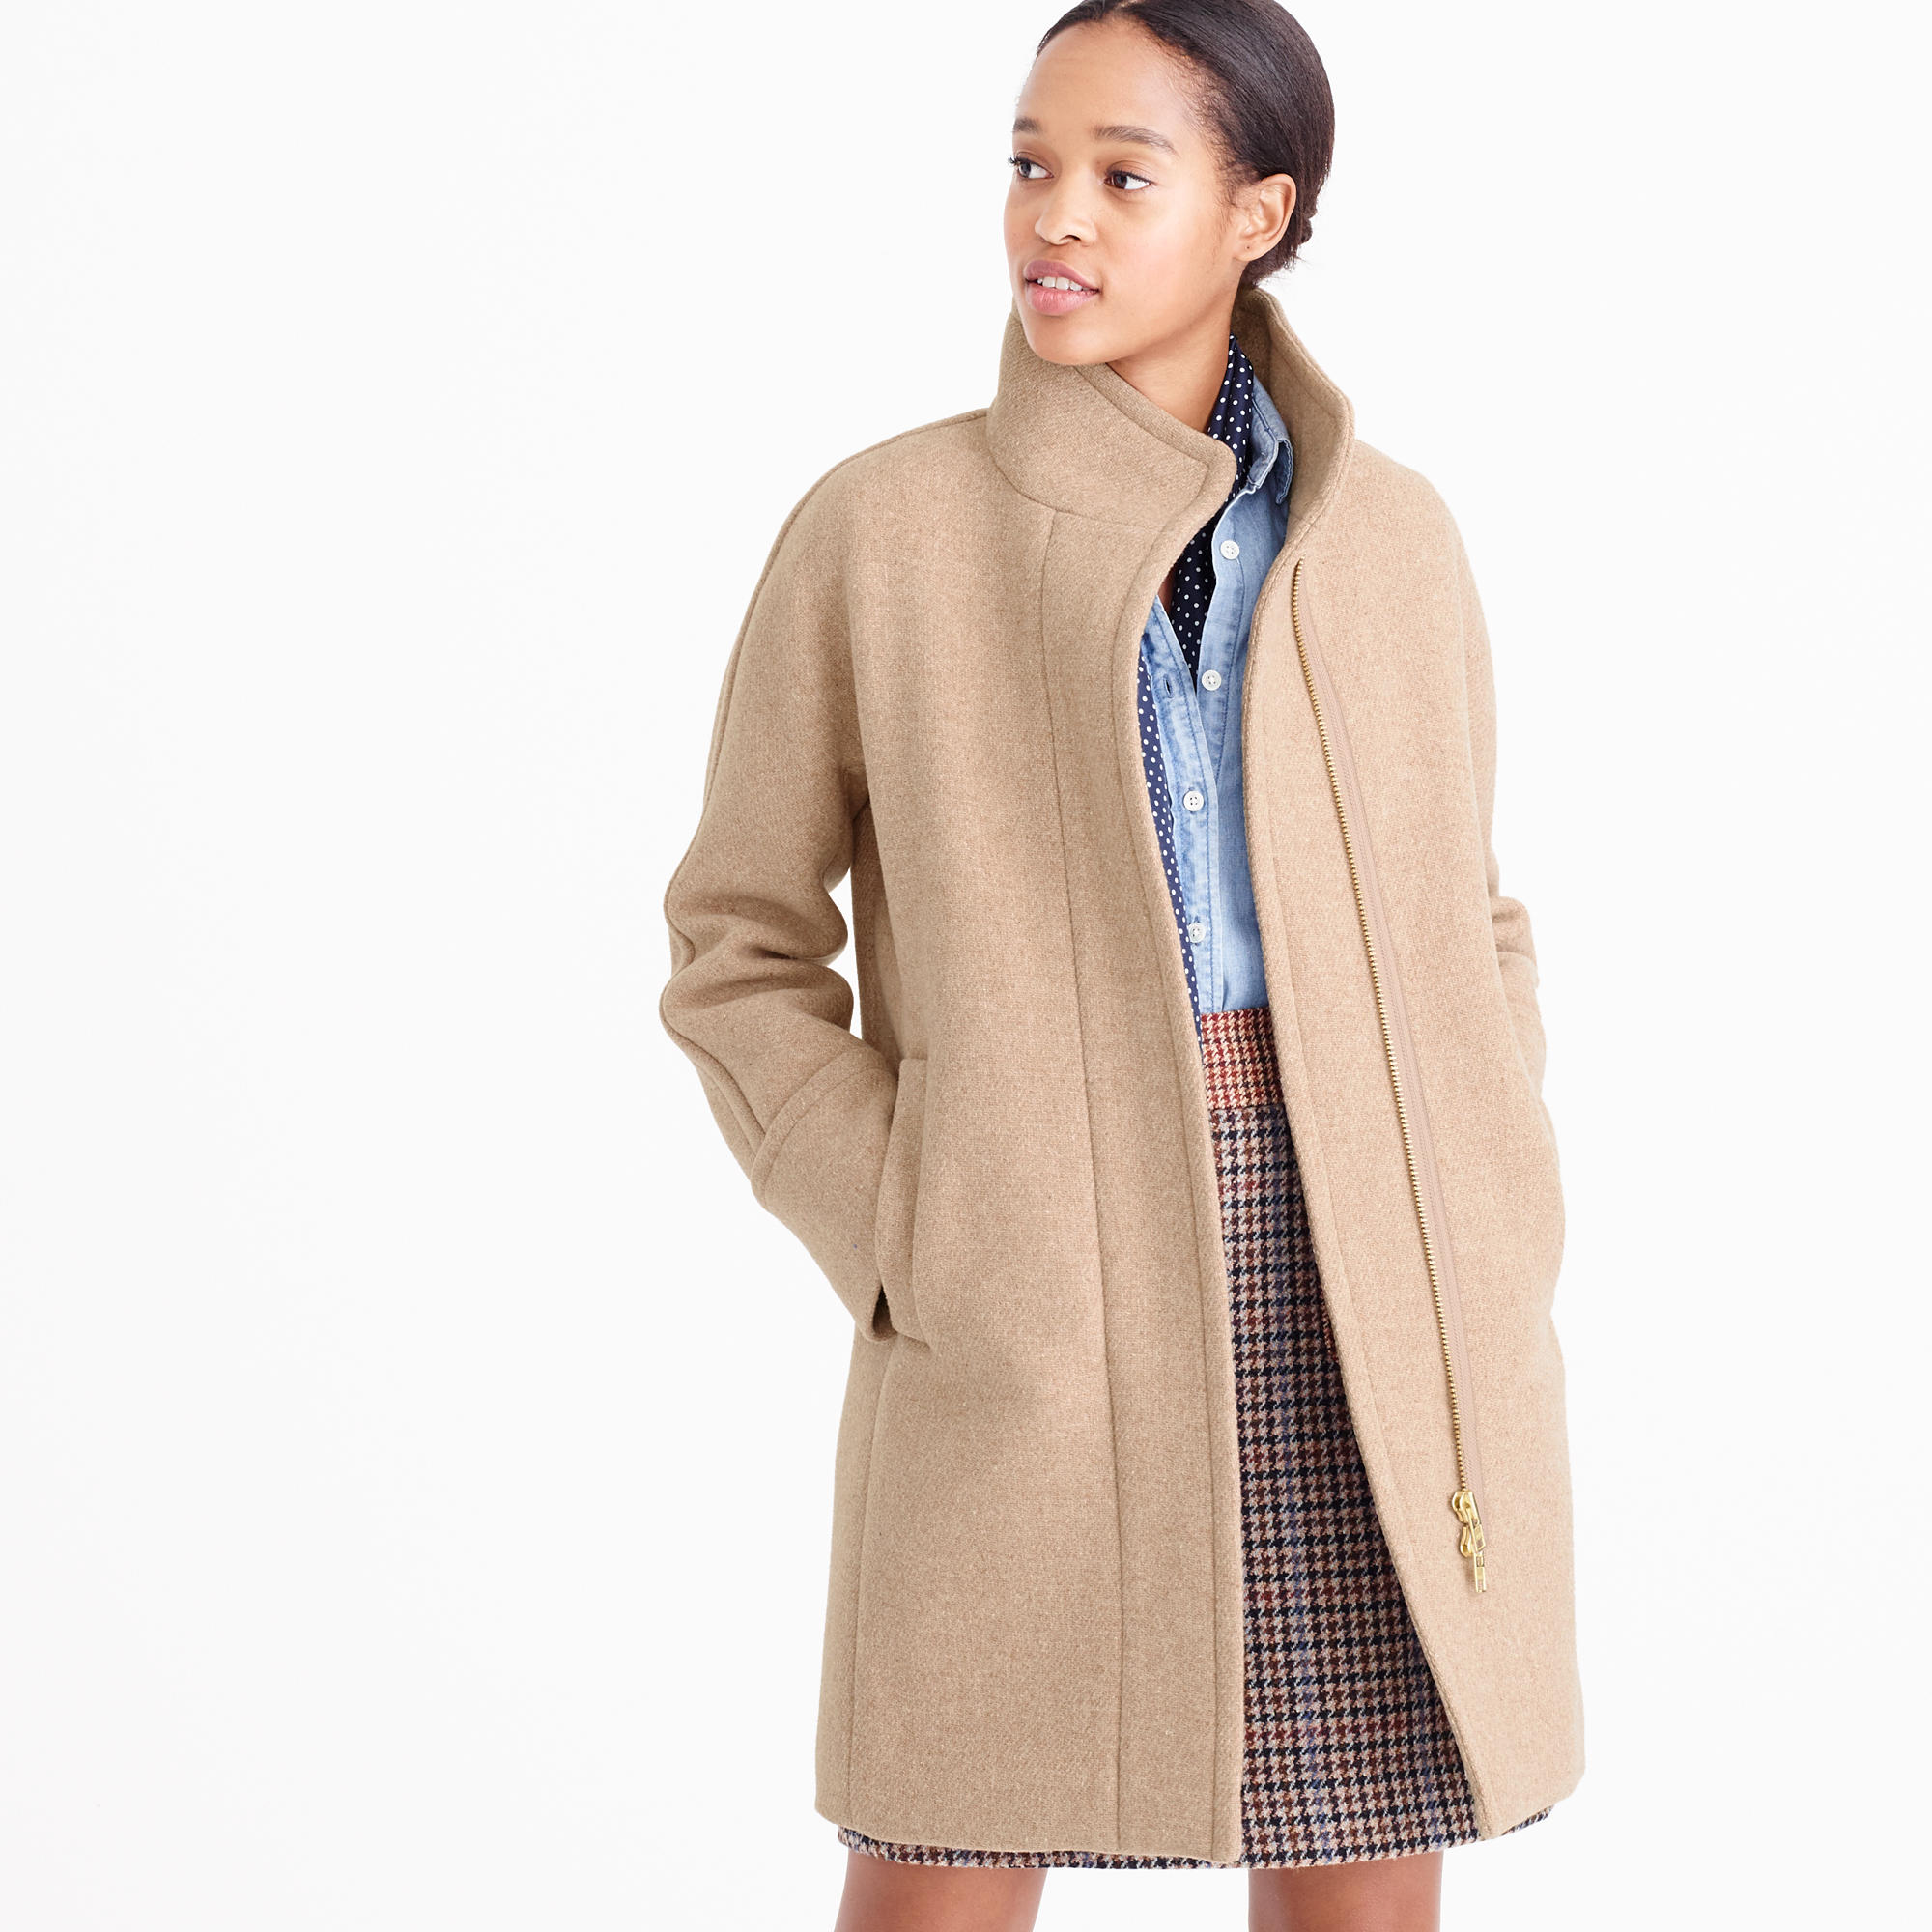 All Women's Coats Should Have Top and Bottom Double ...